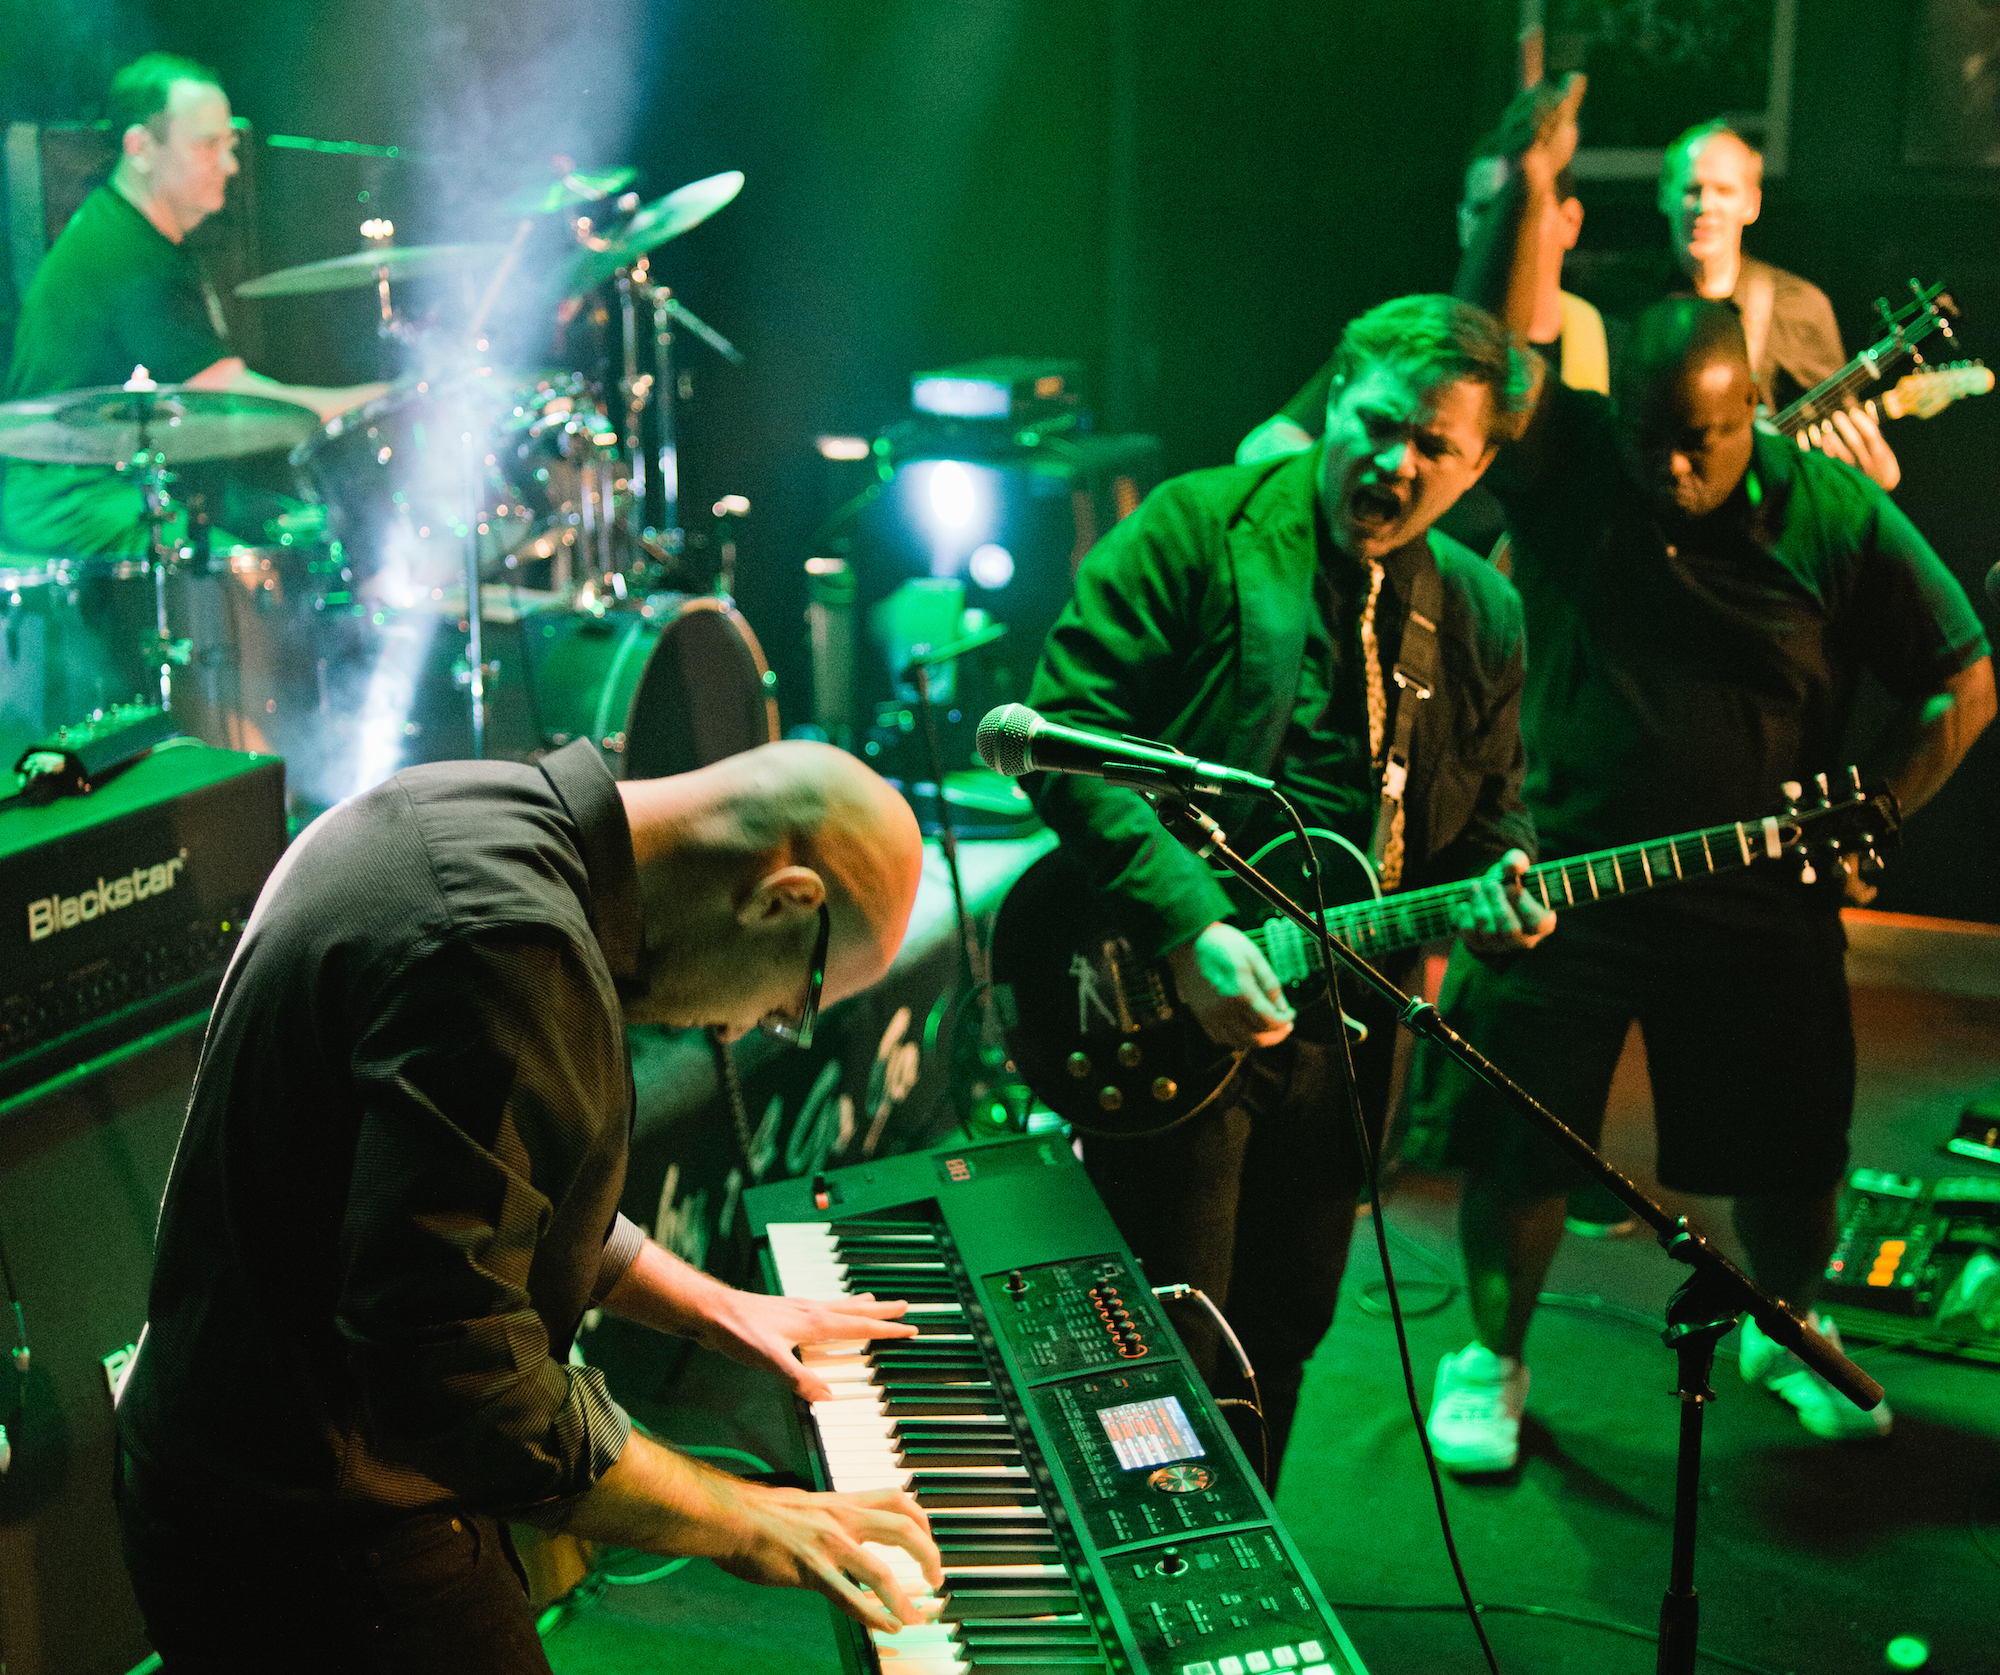 The members of Down By Law (Reed Smith; Constangy, Brooks, Smith & Prophete) enthusiastically give it up for their keyboardist as they rock for LACBA Counsel for Justice at Law Rocks LA.